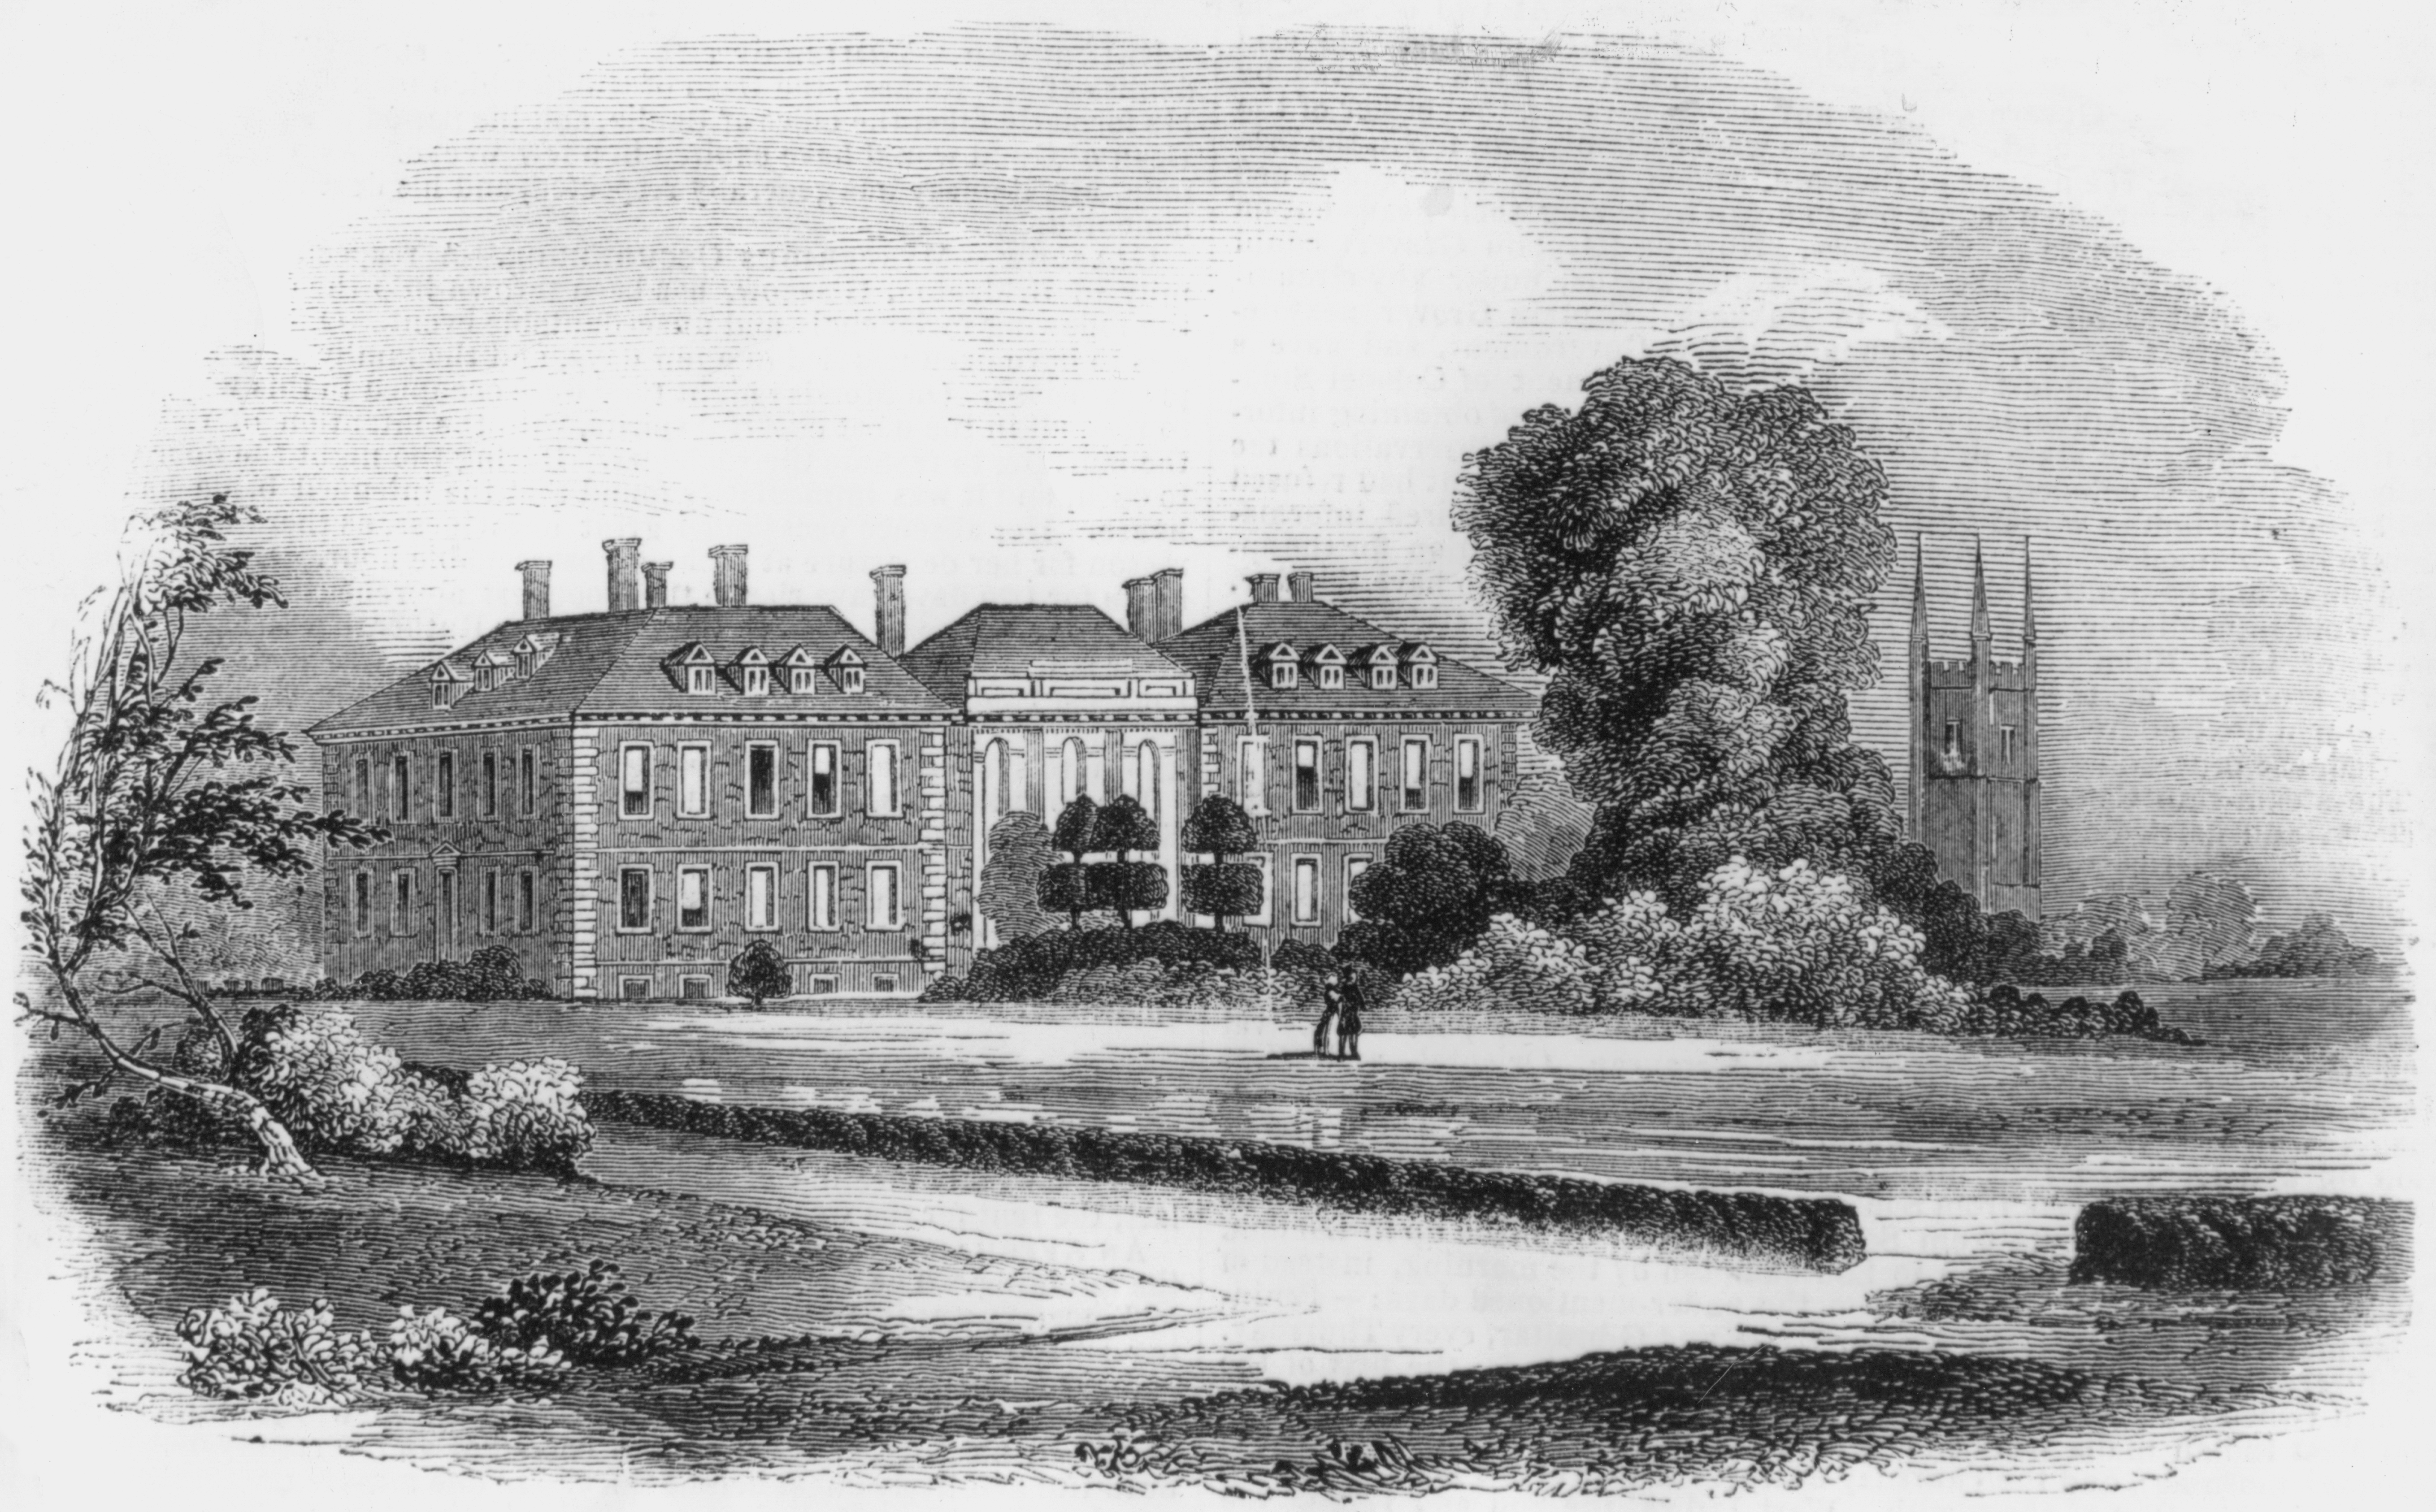 Marlborough Collegiate School, Wiltshire, circa 1820 (Getty Images)